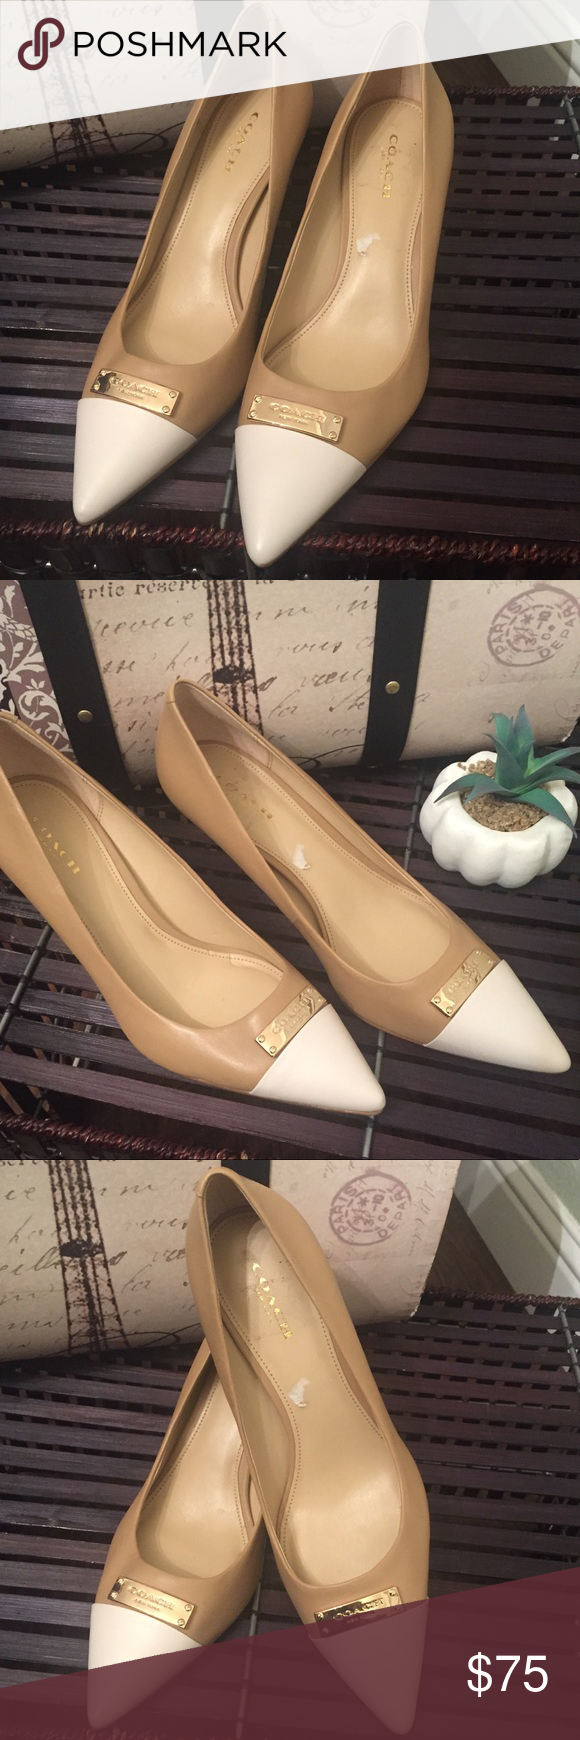 1c8a8fd4b0 COACH Nude/White Leather Pump 7 This leather pump is in great used  condition, lightly used with no signs of wear. Tan/nude leather with white  and gold ...